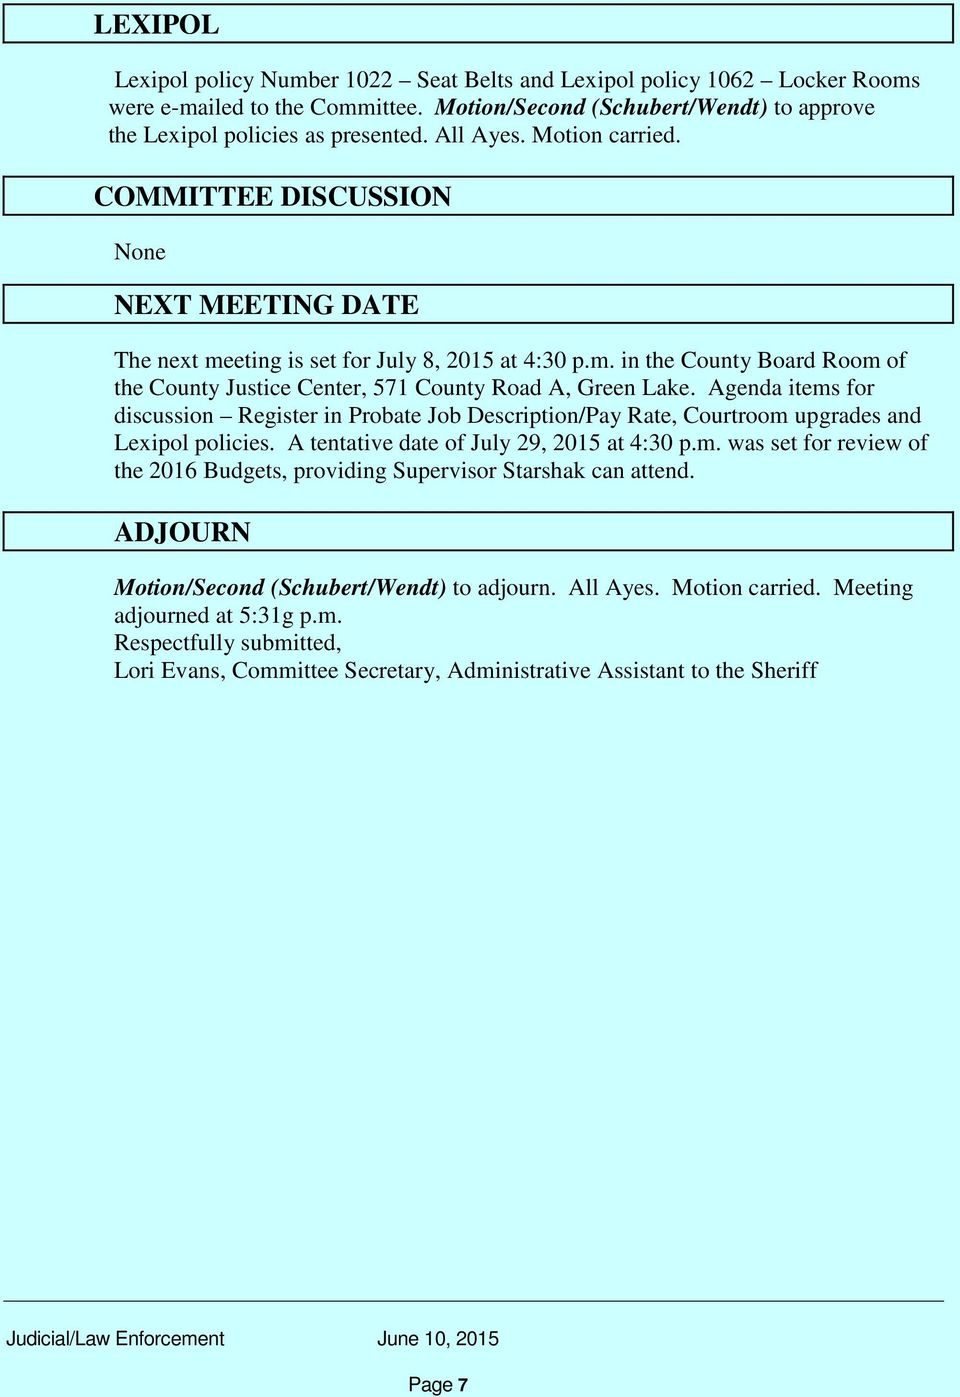 Agenda items for discussion Register in Probate Job Description/Pay Rate, Courtroom upgrades and Lexipol policies. A tentative date of July 29, 2015 at 4:30 p.m. was set for review of the 2016 Budgets, providing Supervisor Starshak can attend.